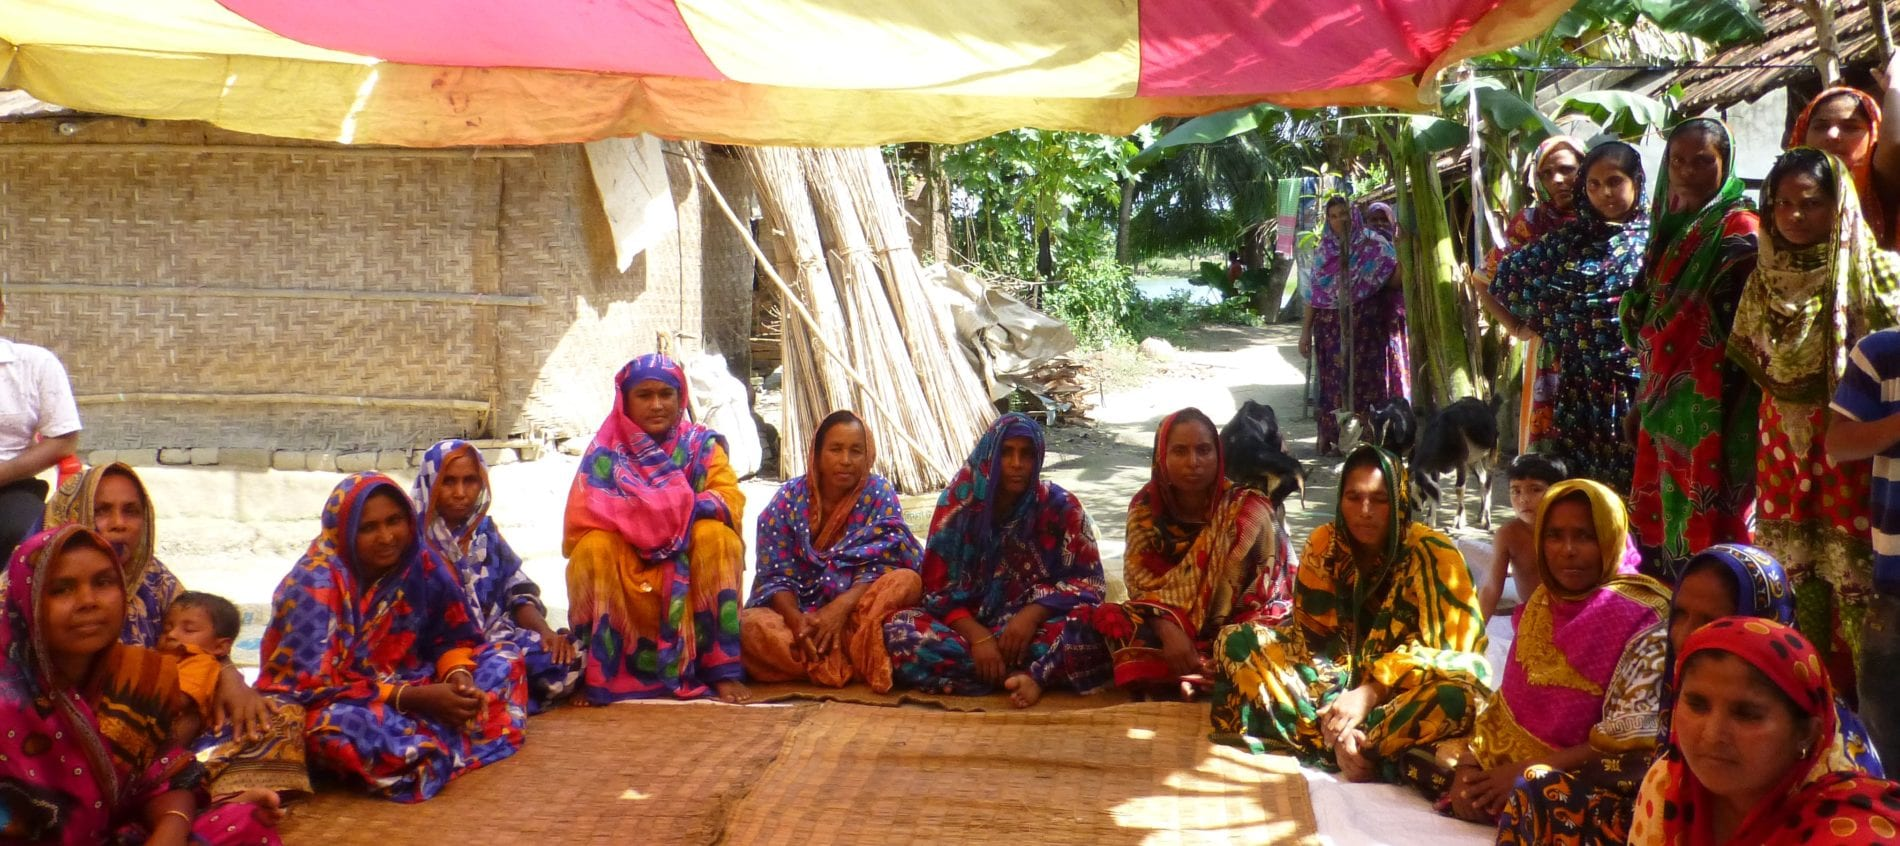 brac bangladesh microcredit meeting of women